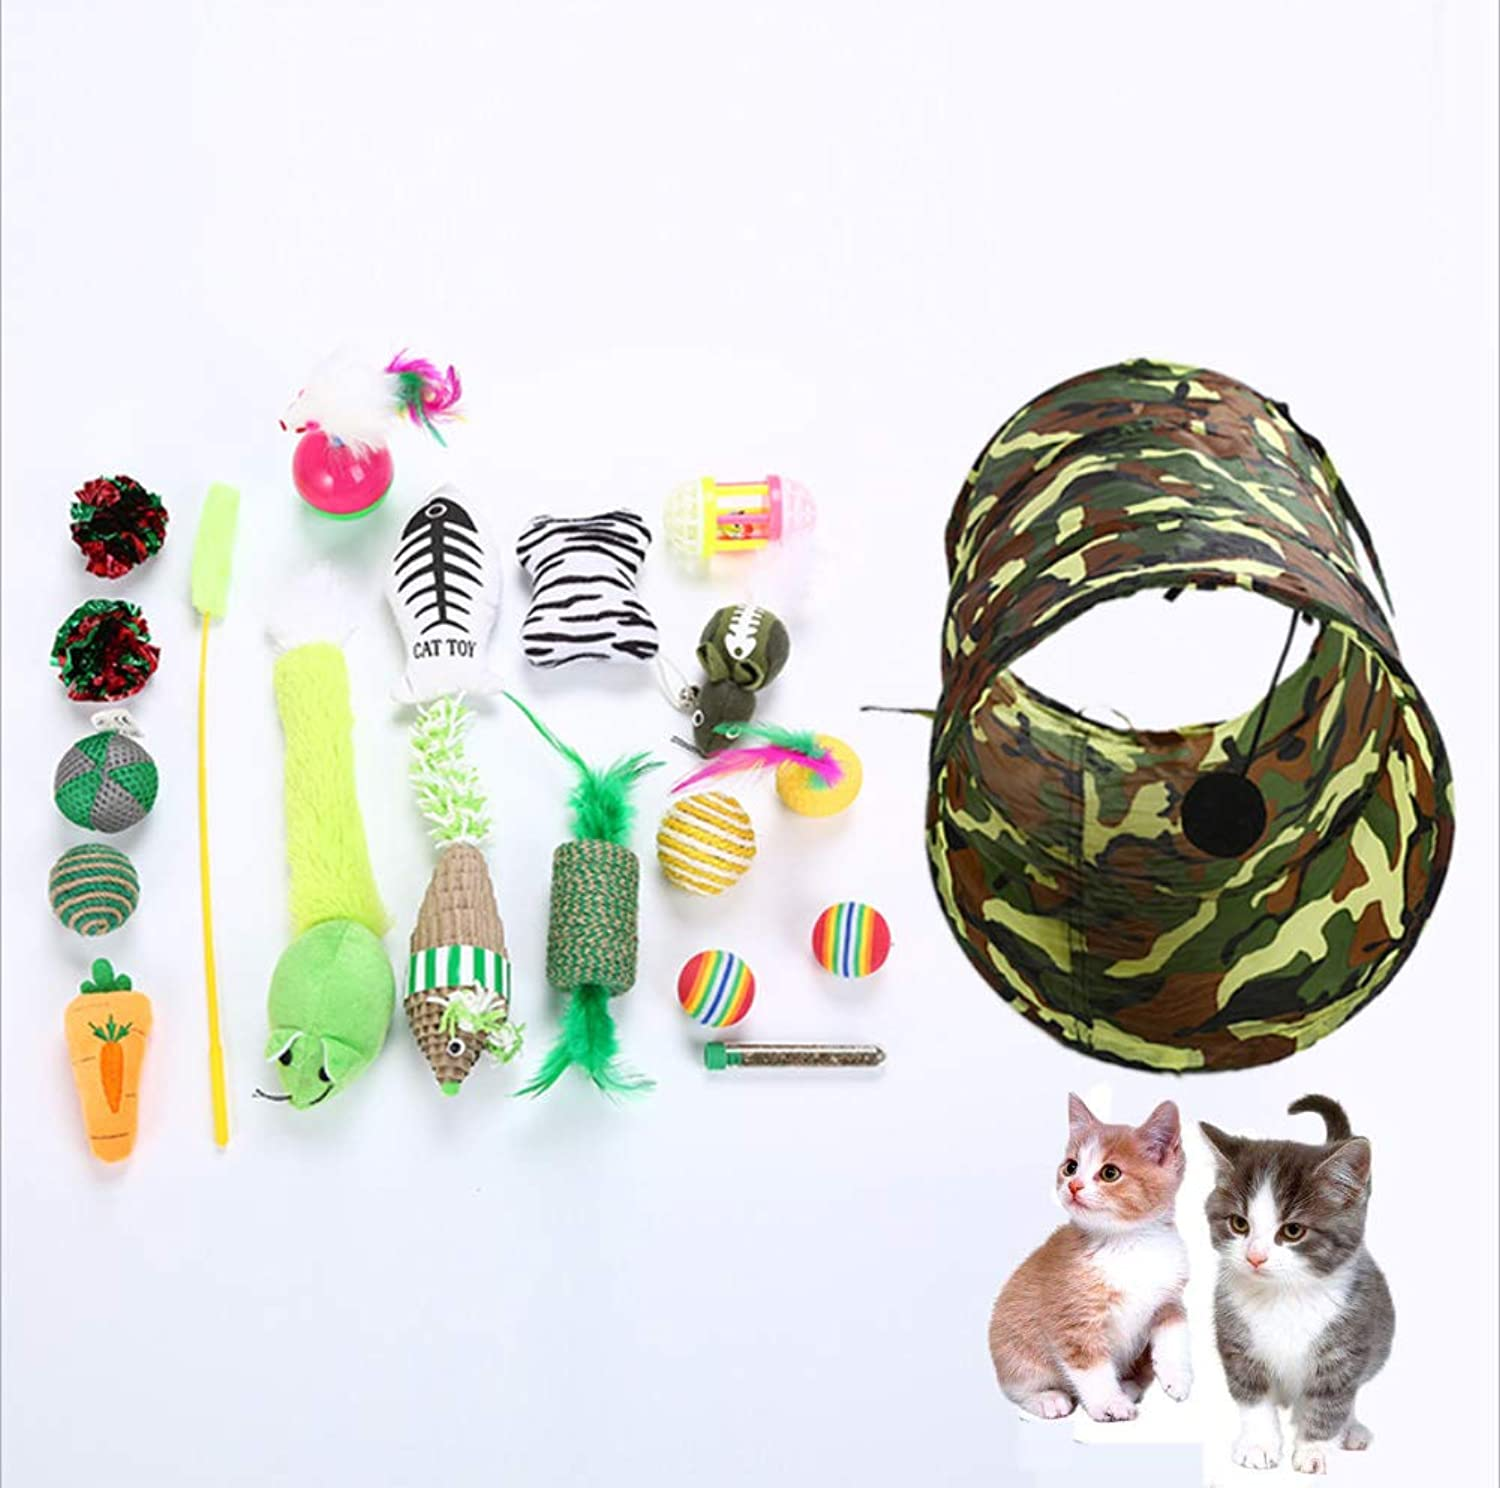 20Pc 2 Way Tunnel Collapsible Cat Tunnel Durable Comfortable Hideaway Pet Crinkle Tunnel for Pets for Cat, Kitty, Kitten, Puppy